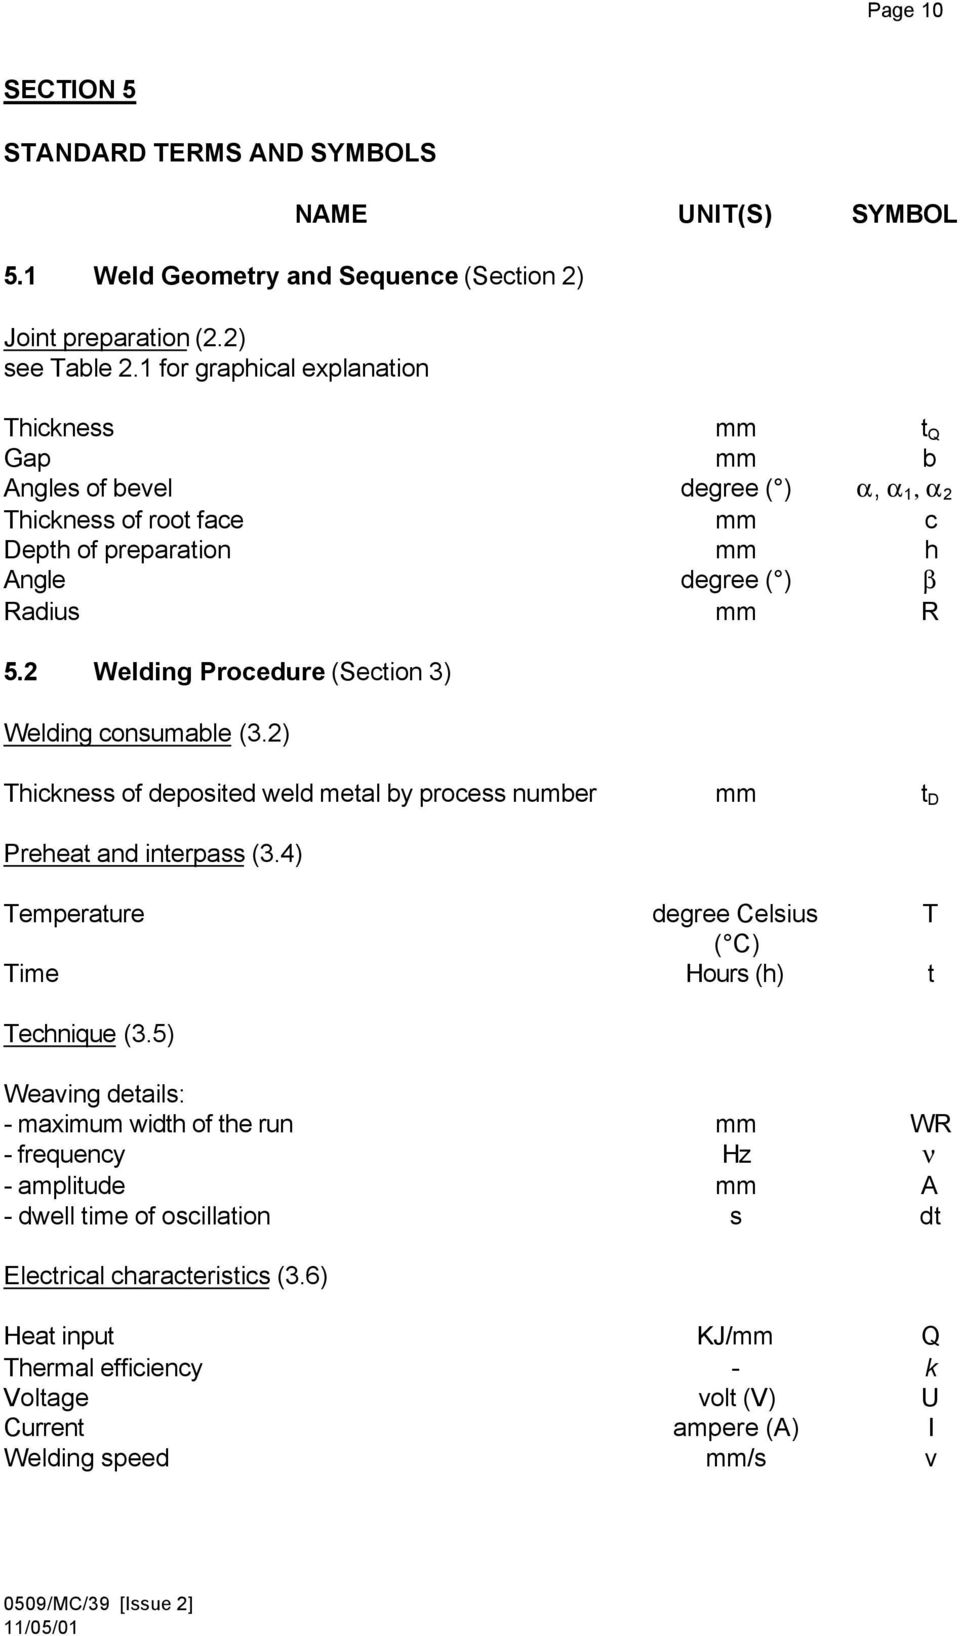 TERMS AND TERMINOLOGY FOR WELDING PROCESSES AND WELD